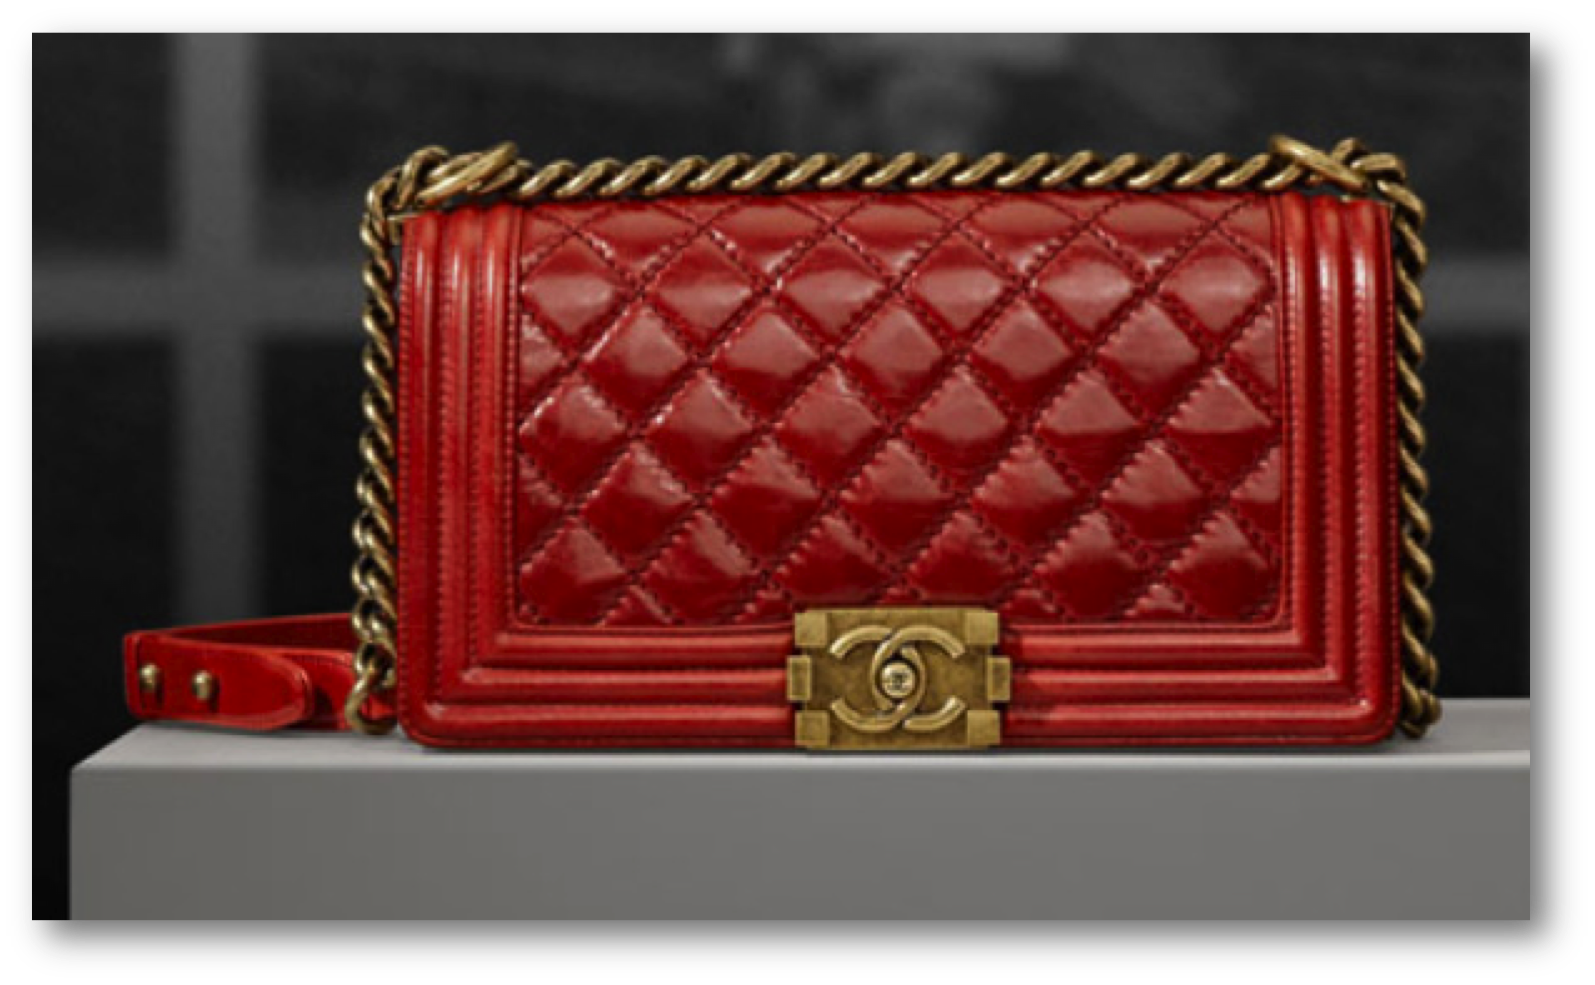 unique-designer-bags-chanel_chanel-bag-2013_CHANEL-BAG-TRENDS_THE-CHANEL-BAG-2014-COLLECTION_CHANEL-INSPIRED-TRENDS_CHEAP-CHANEL-BAGS_NEW-CHANEL-BAG_COLOURFUL-CHANEL-BAG-ACCESSORIES